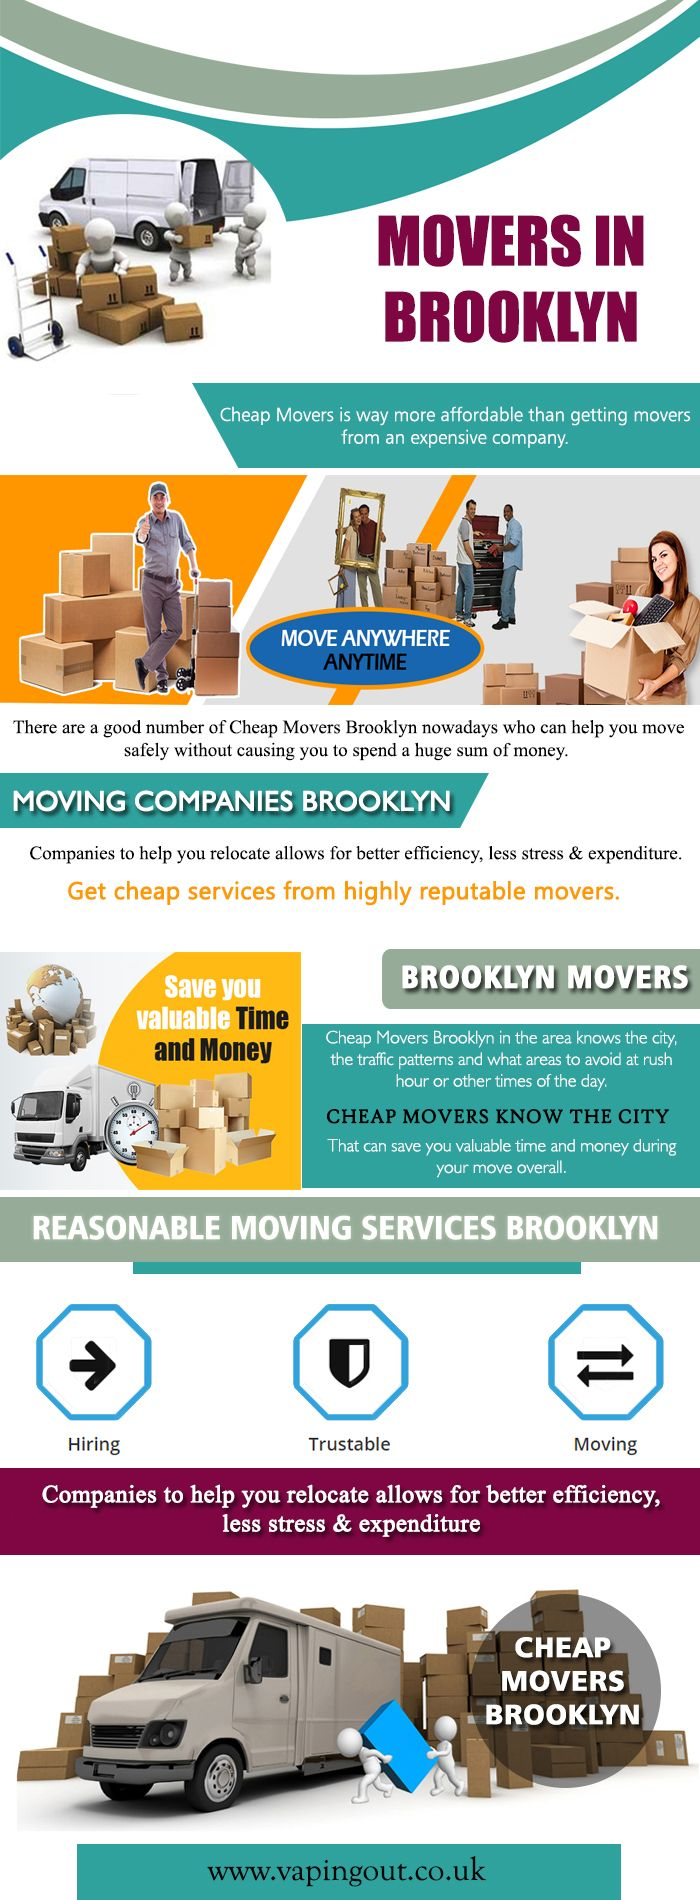 If you go through a Moving Companies Brooklyn Reviews then you will get a complete insight of our service strategies. In general, our moving company's reviews will tell you about the type of service the company generally offers. From here you can judge that our moving company is better with other moving services. So, have a look at moving companies reviews to choose a proper company for a smooth move.